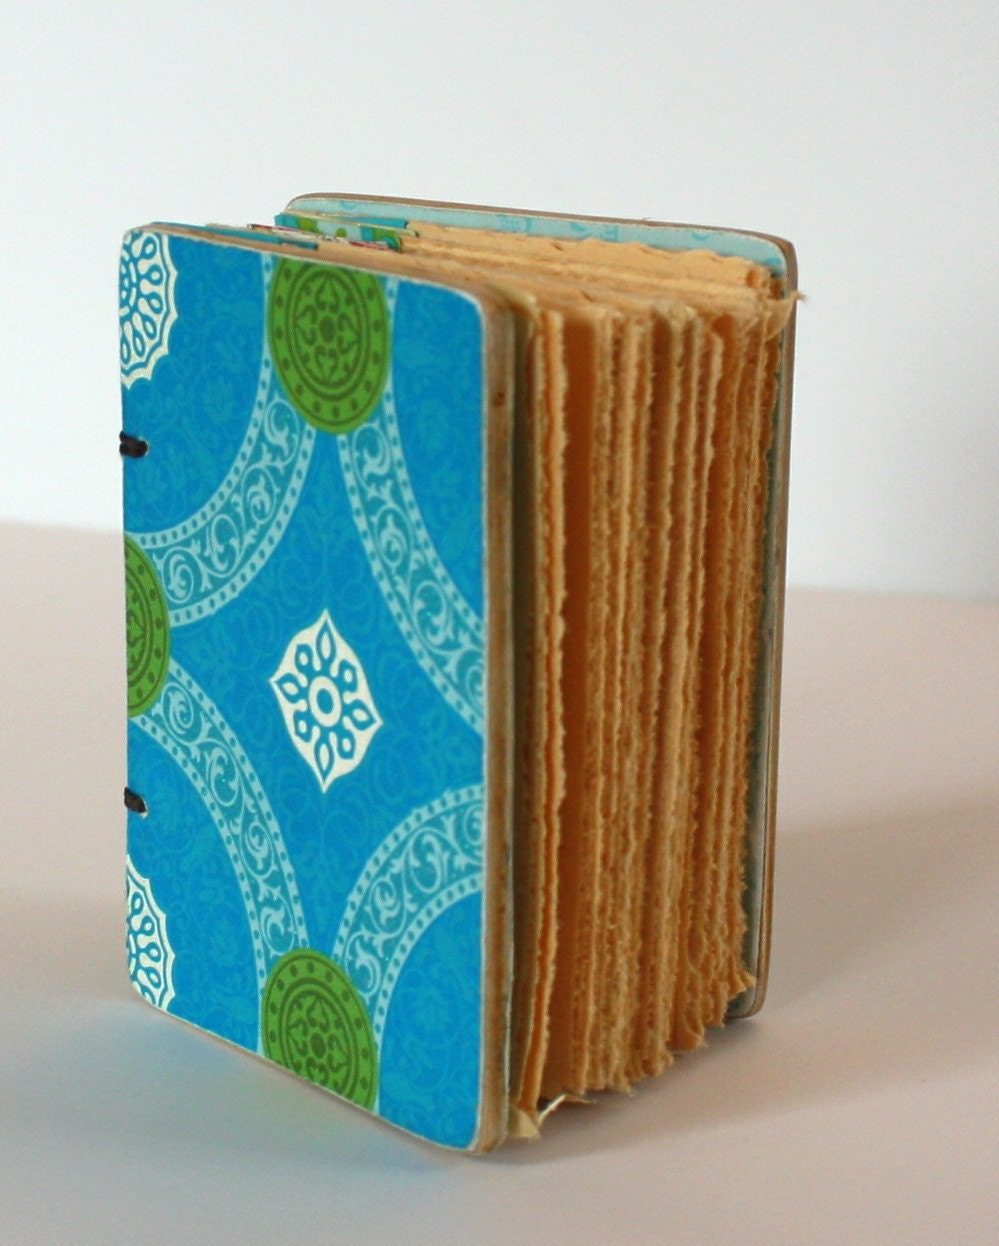 Mini Handmade journal with Coptic Binding